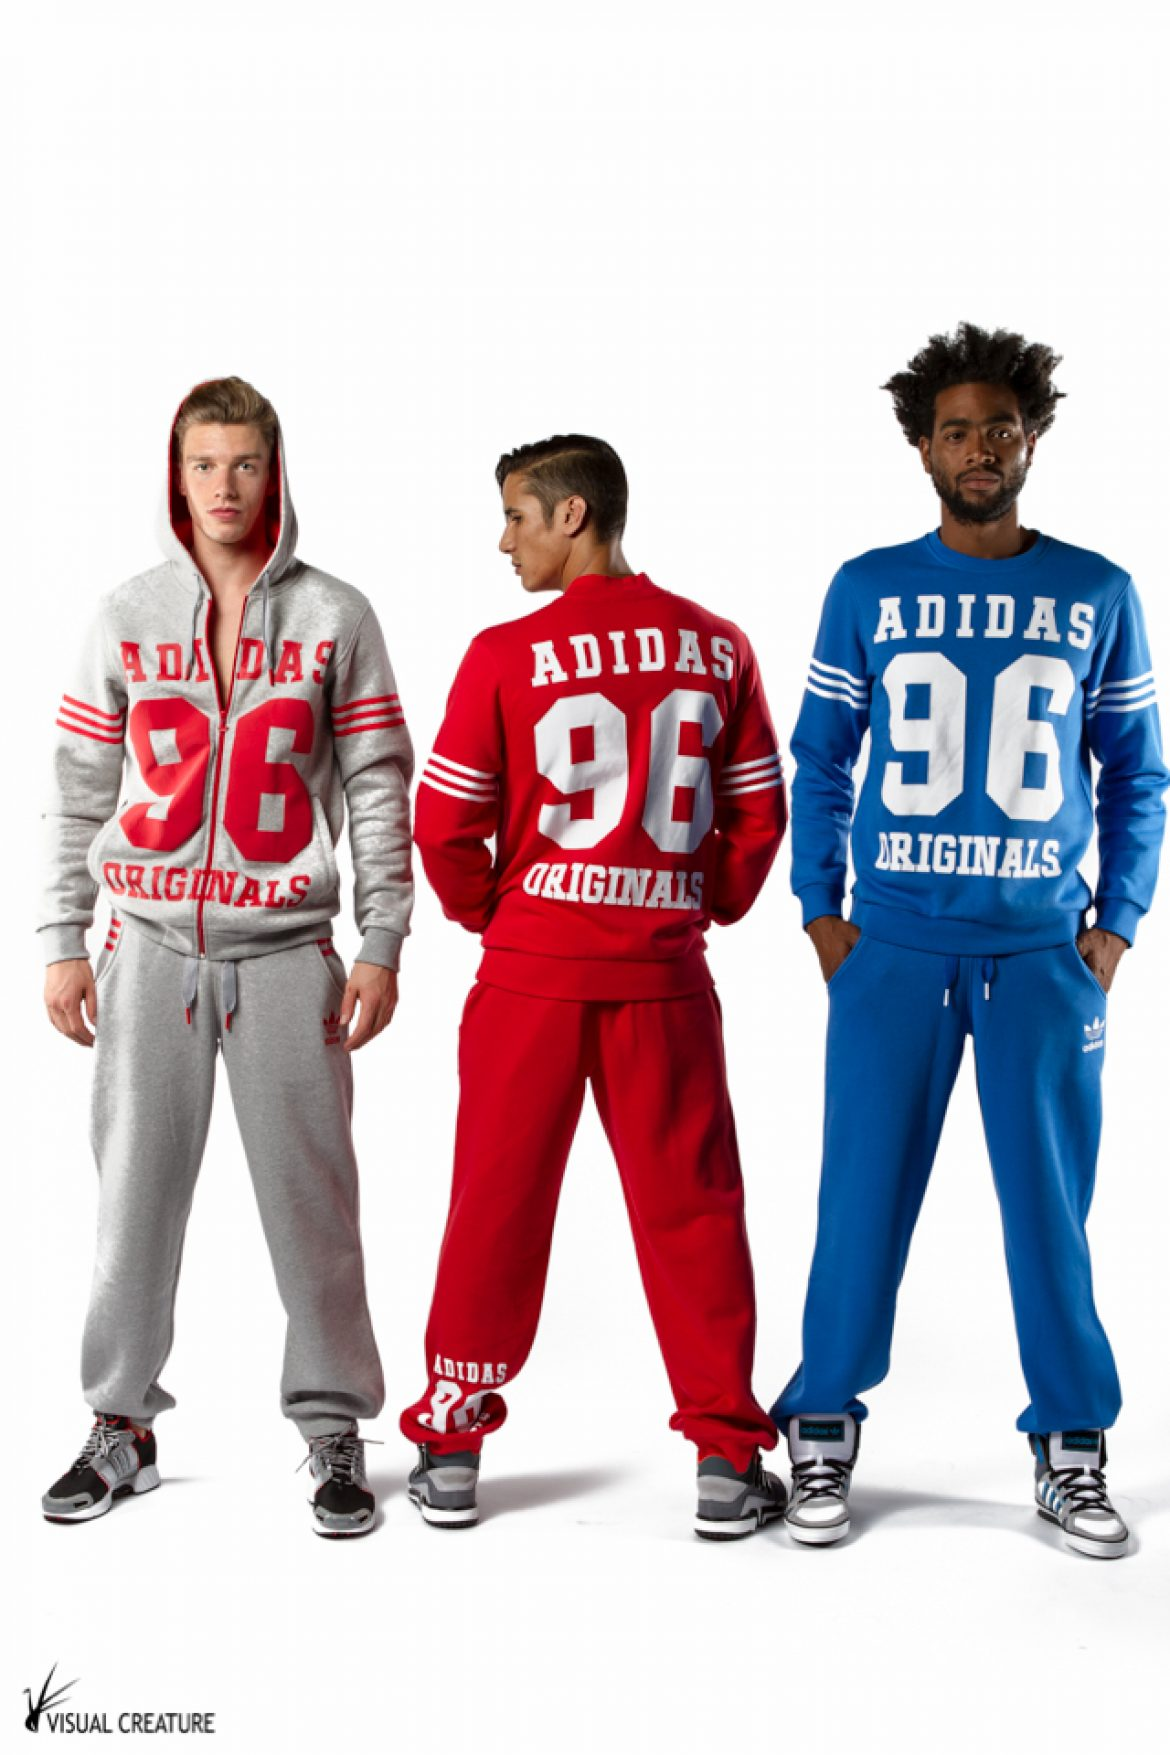 Just posted: Adidas SS14 collection